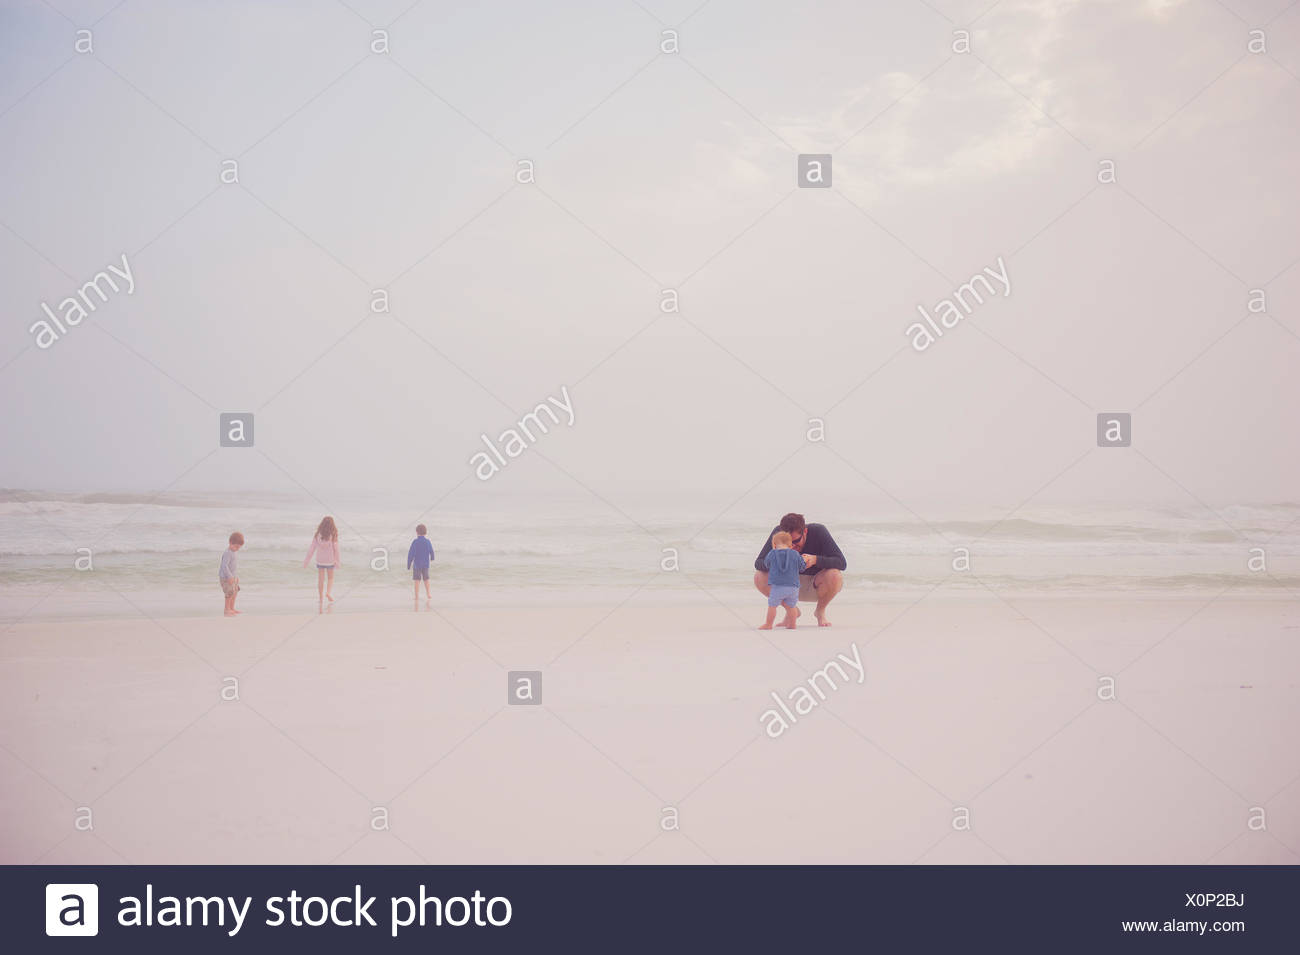 Family on a beach - Stock Image